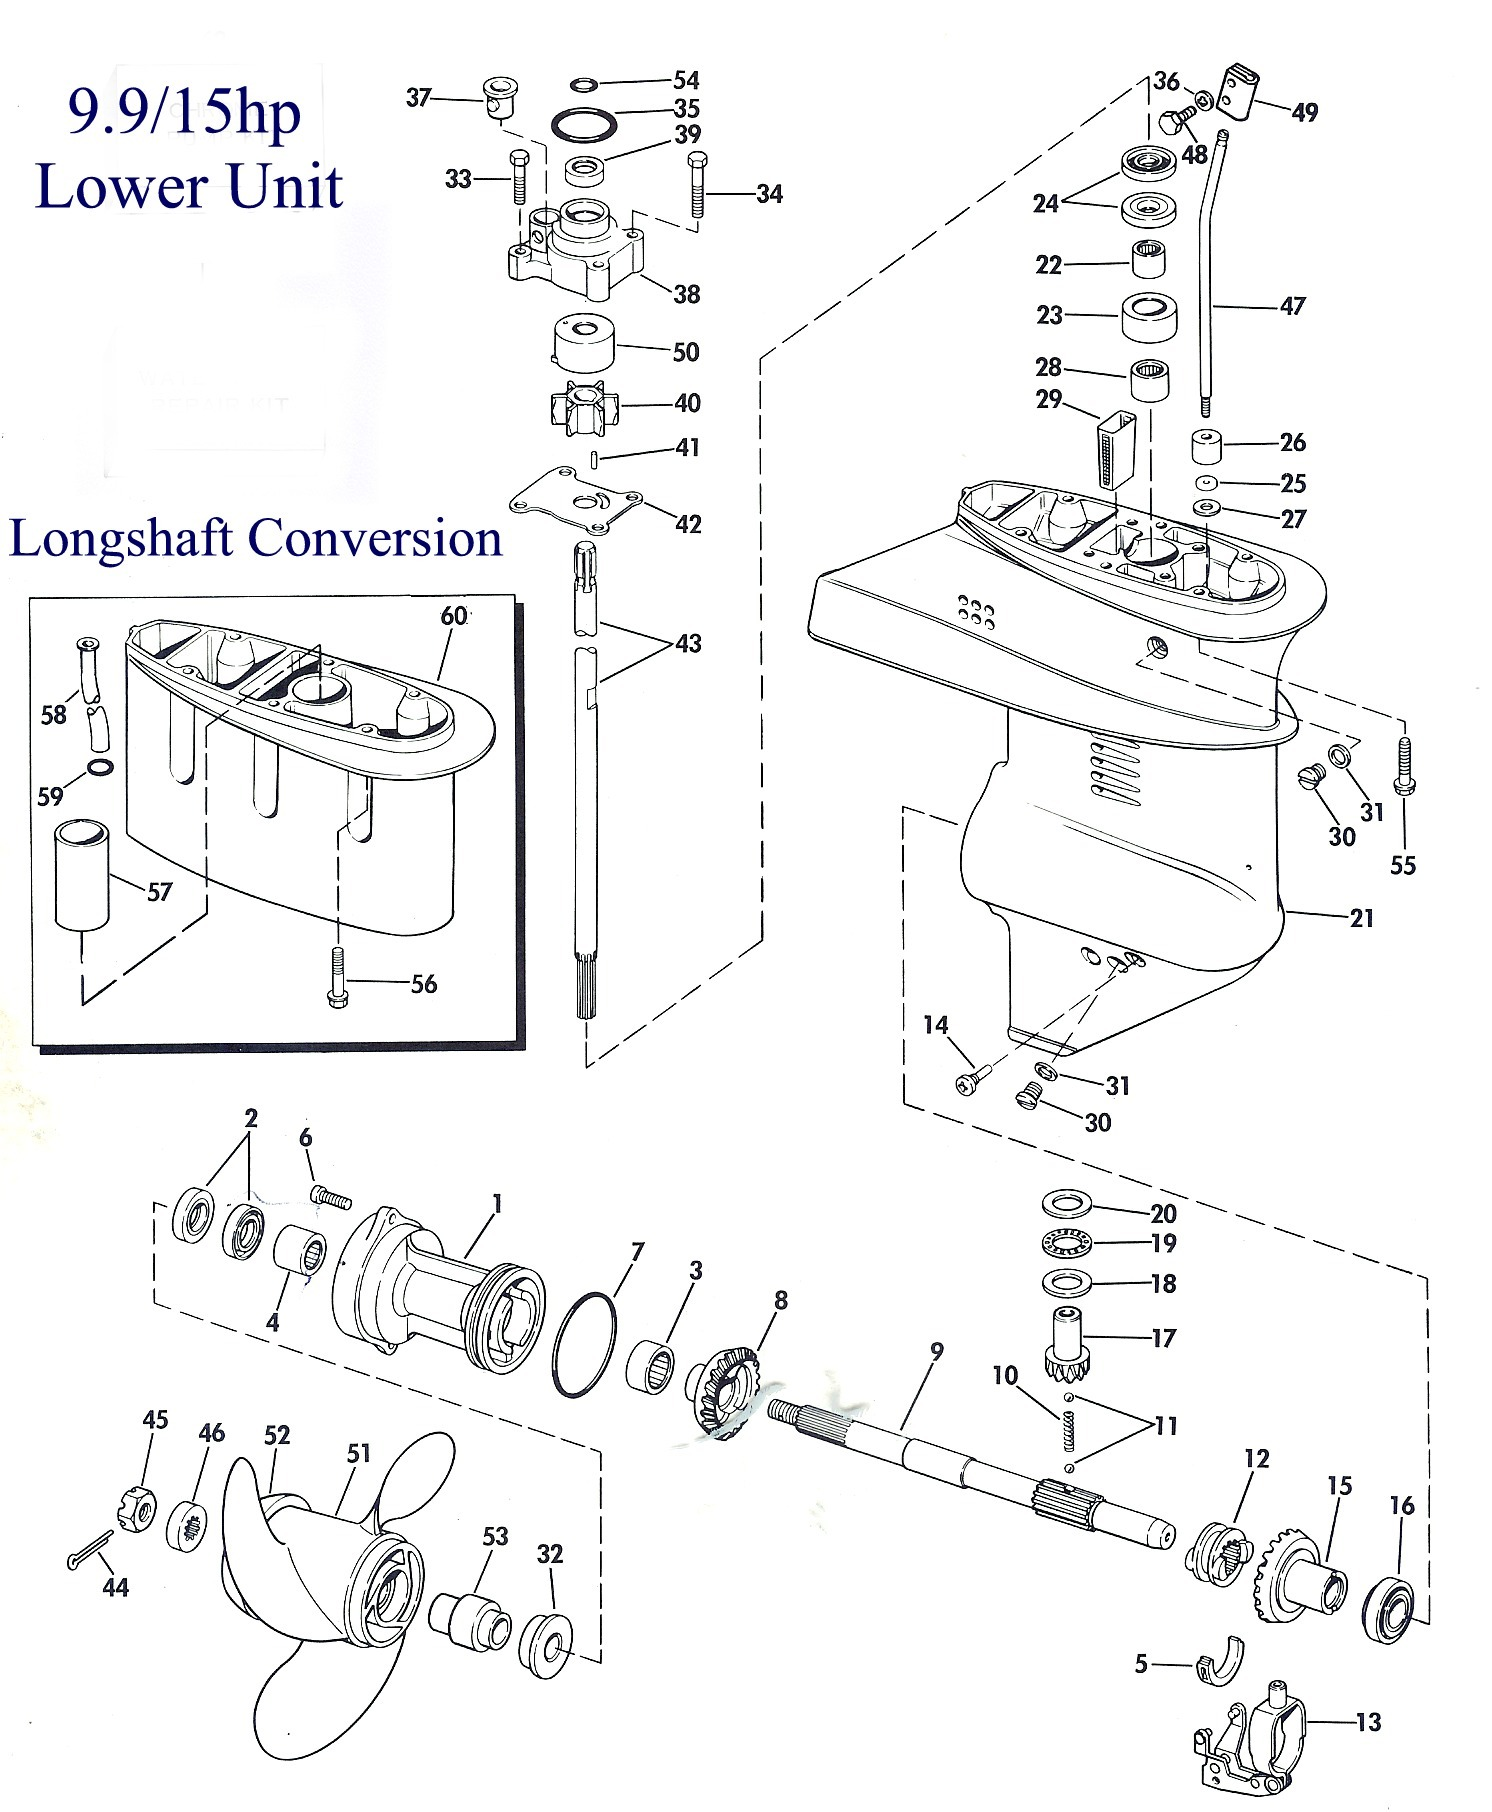 Lower_unit on 90 Hp Mercury Outboard Wiring Diagram